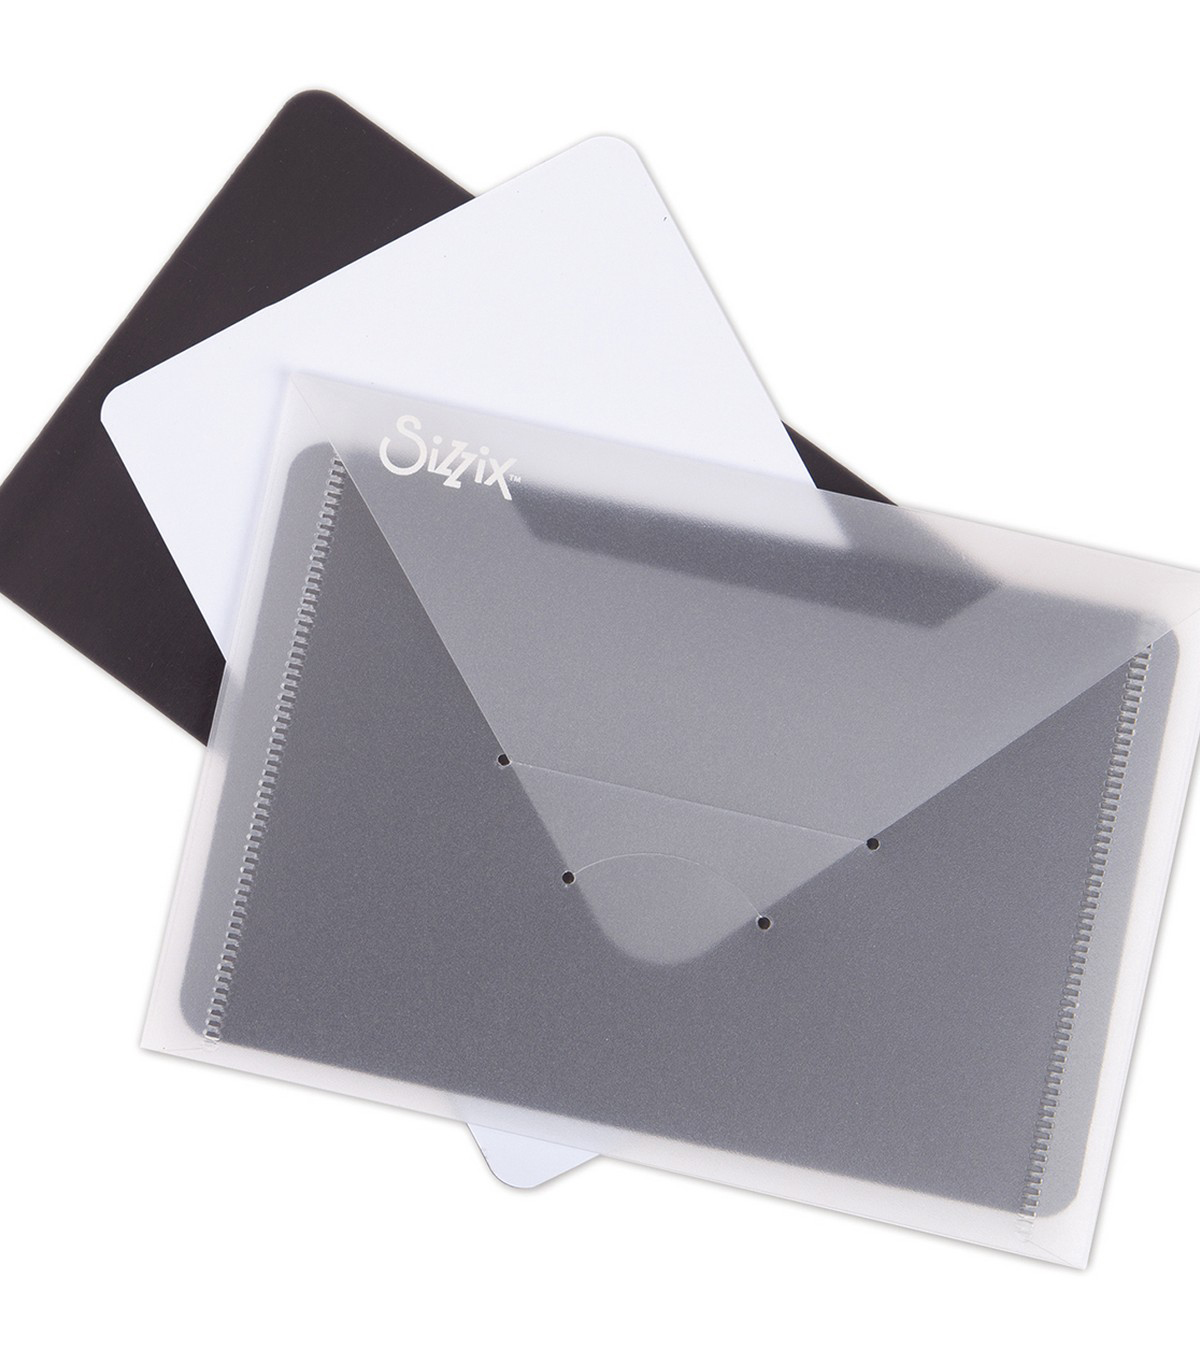 Sizzix Plastic Envelopes with Magnetic Sheets